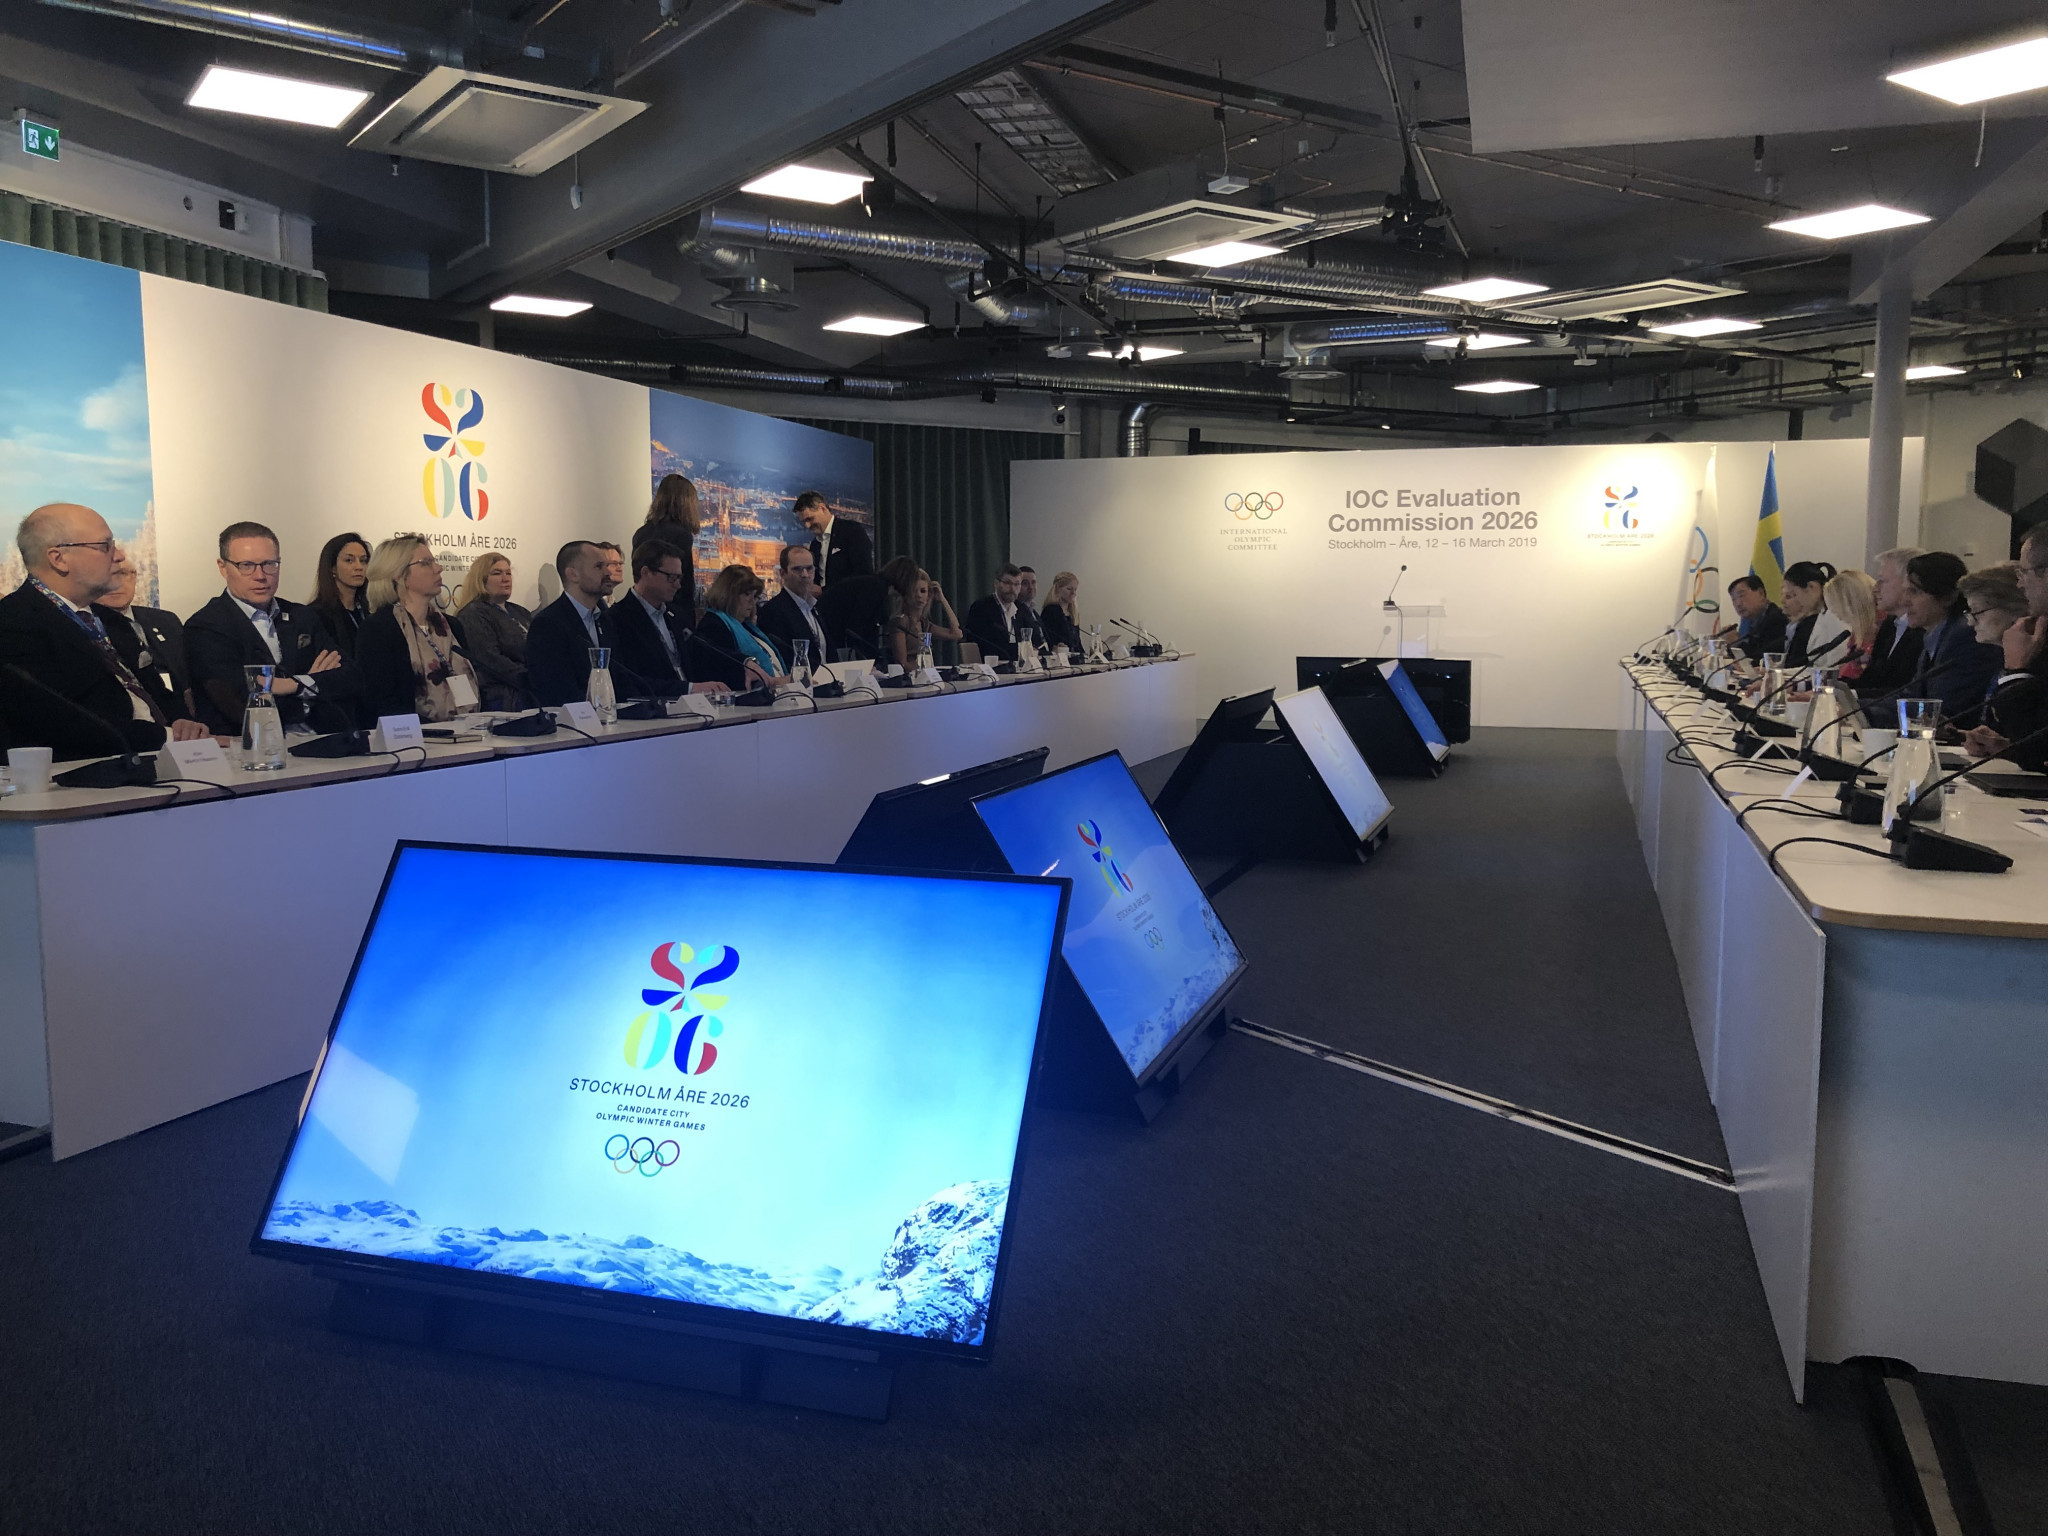 """Lindberg claims Stockholm Åre 2026 can host the """"transformative"""" Olympics the IOC need"""